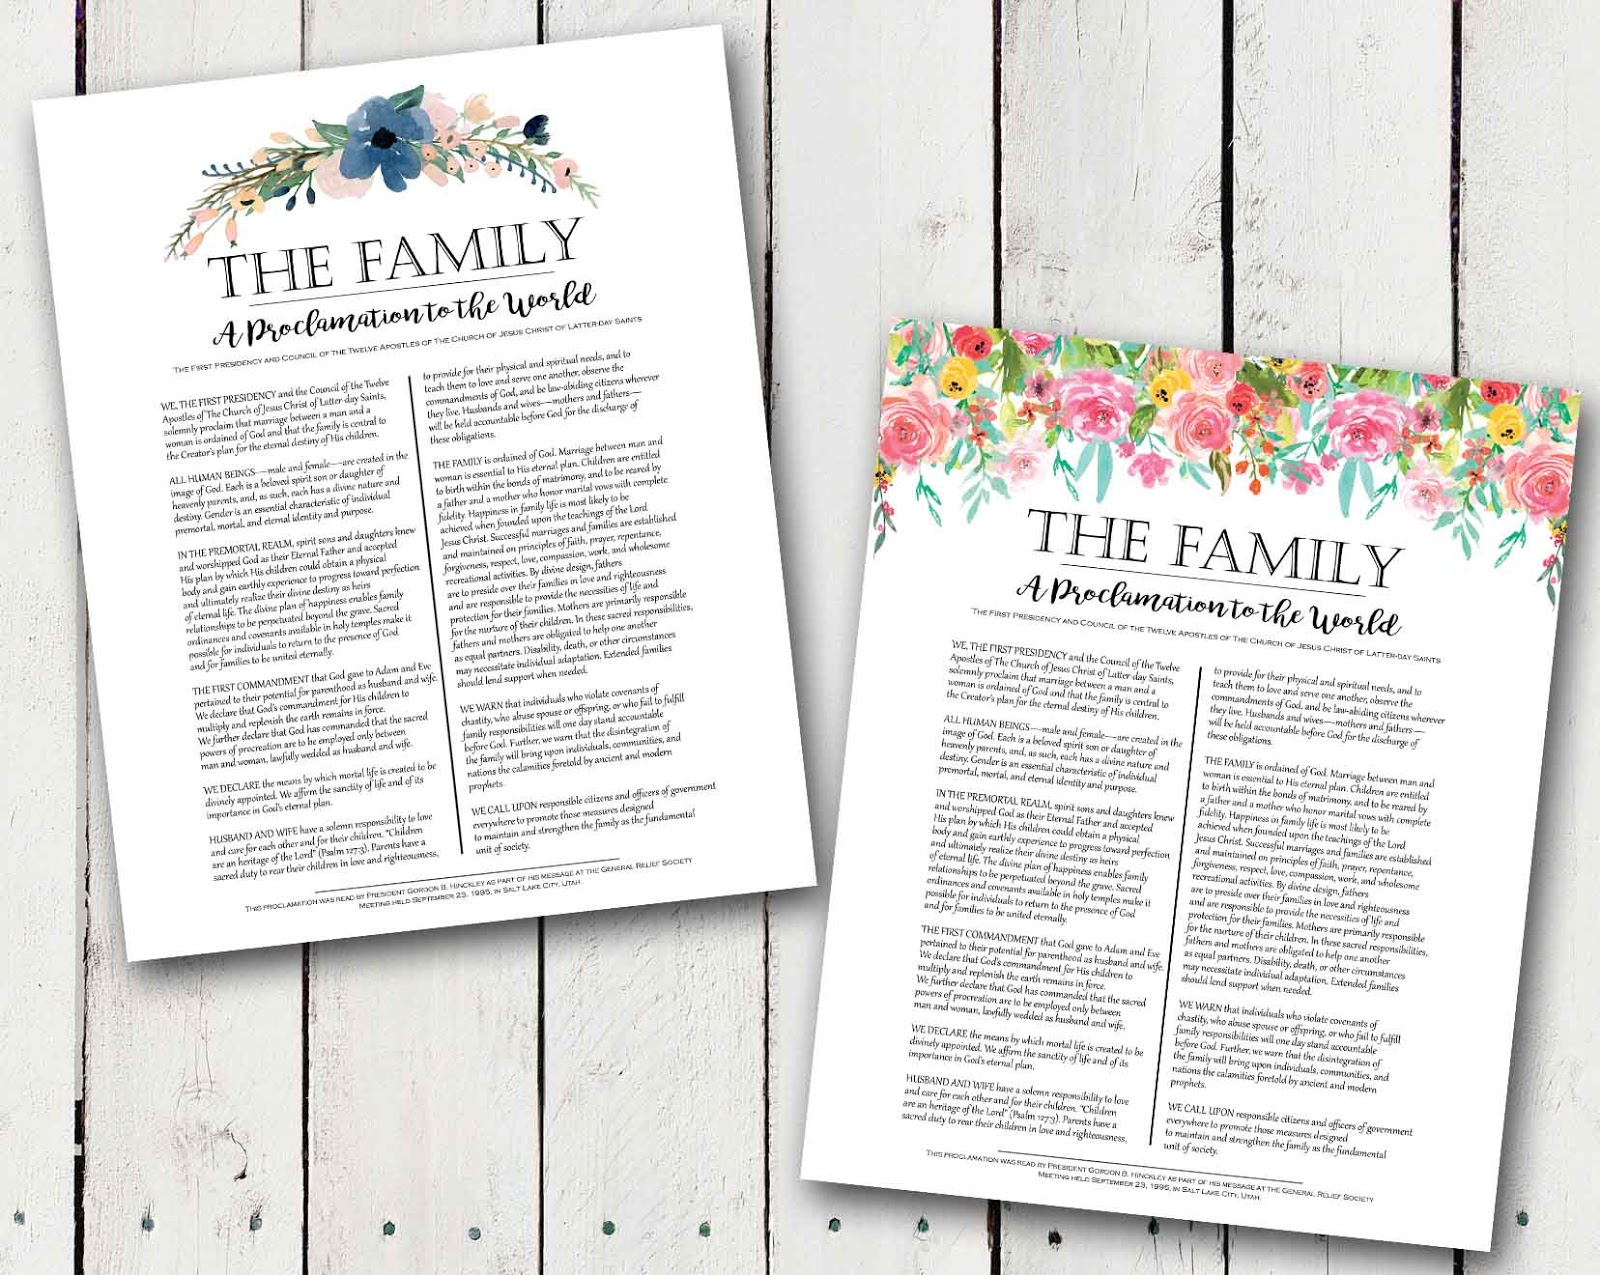 picture about The Family a Proclamation to the World Free Printable referred to as A Pocket total of LDS prints: The Loved ones: A Proclamation in the direction of